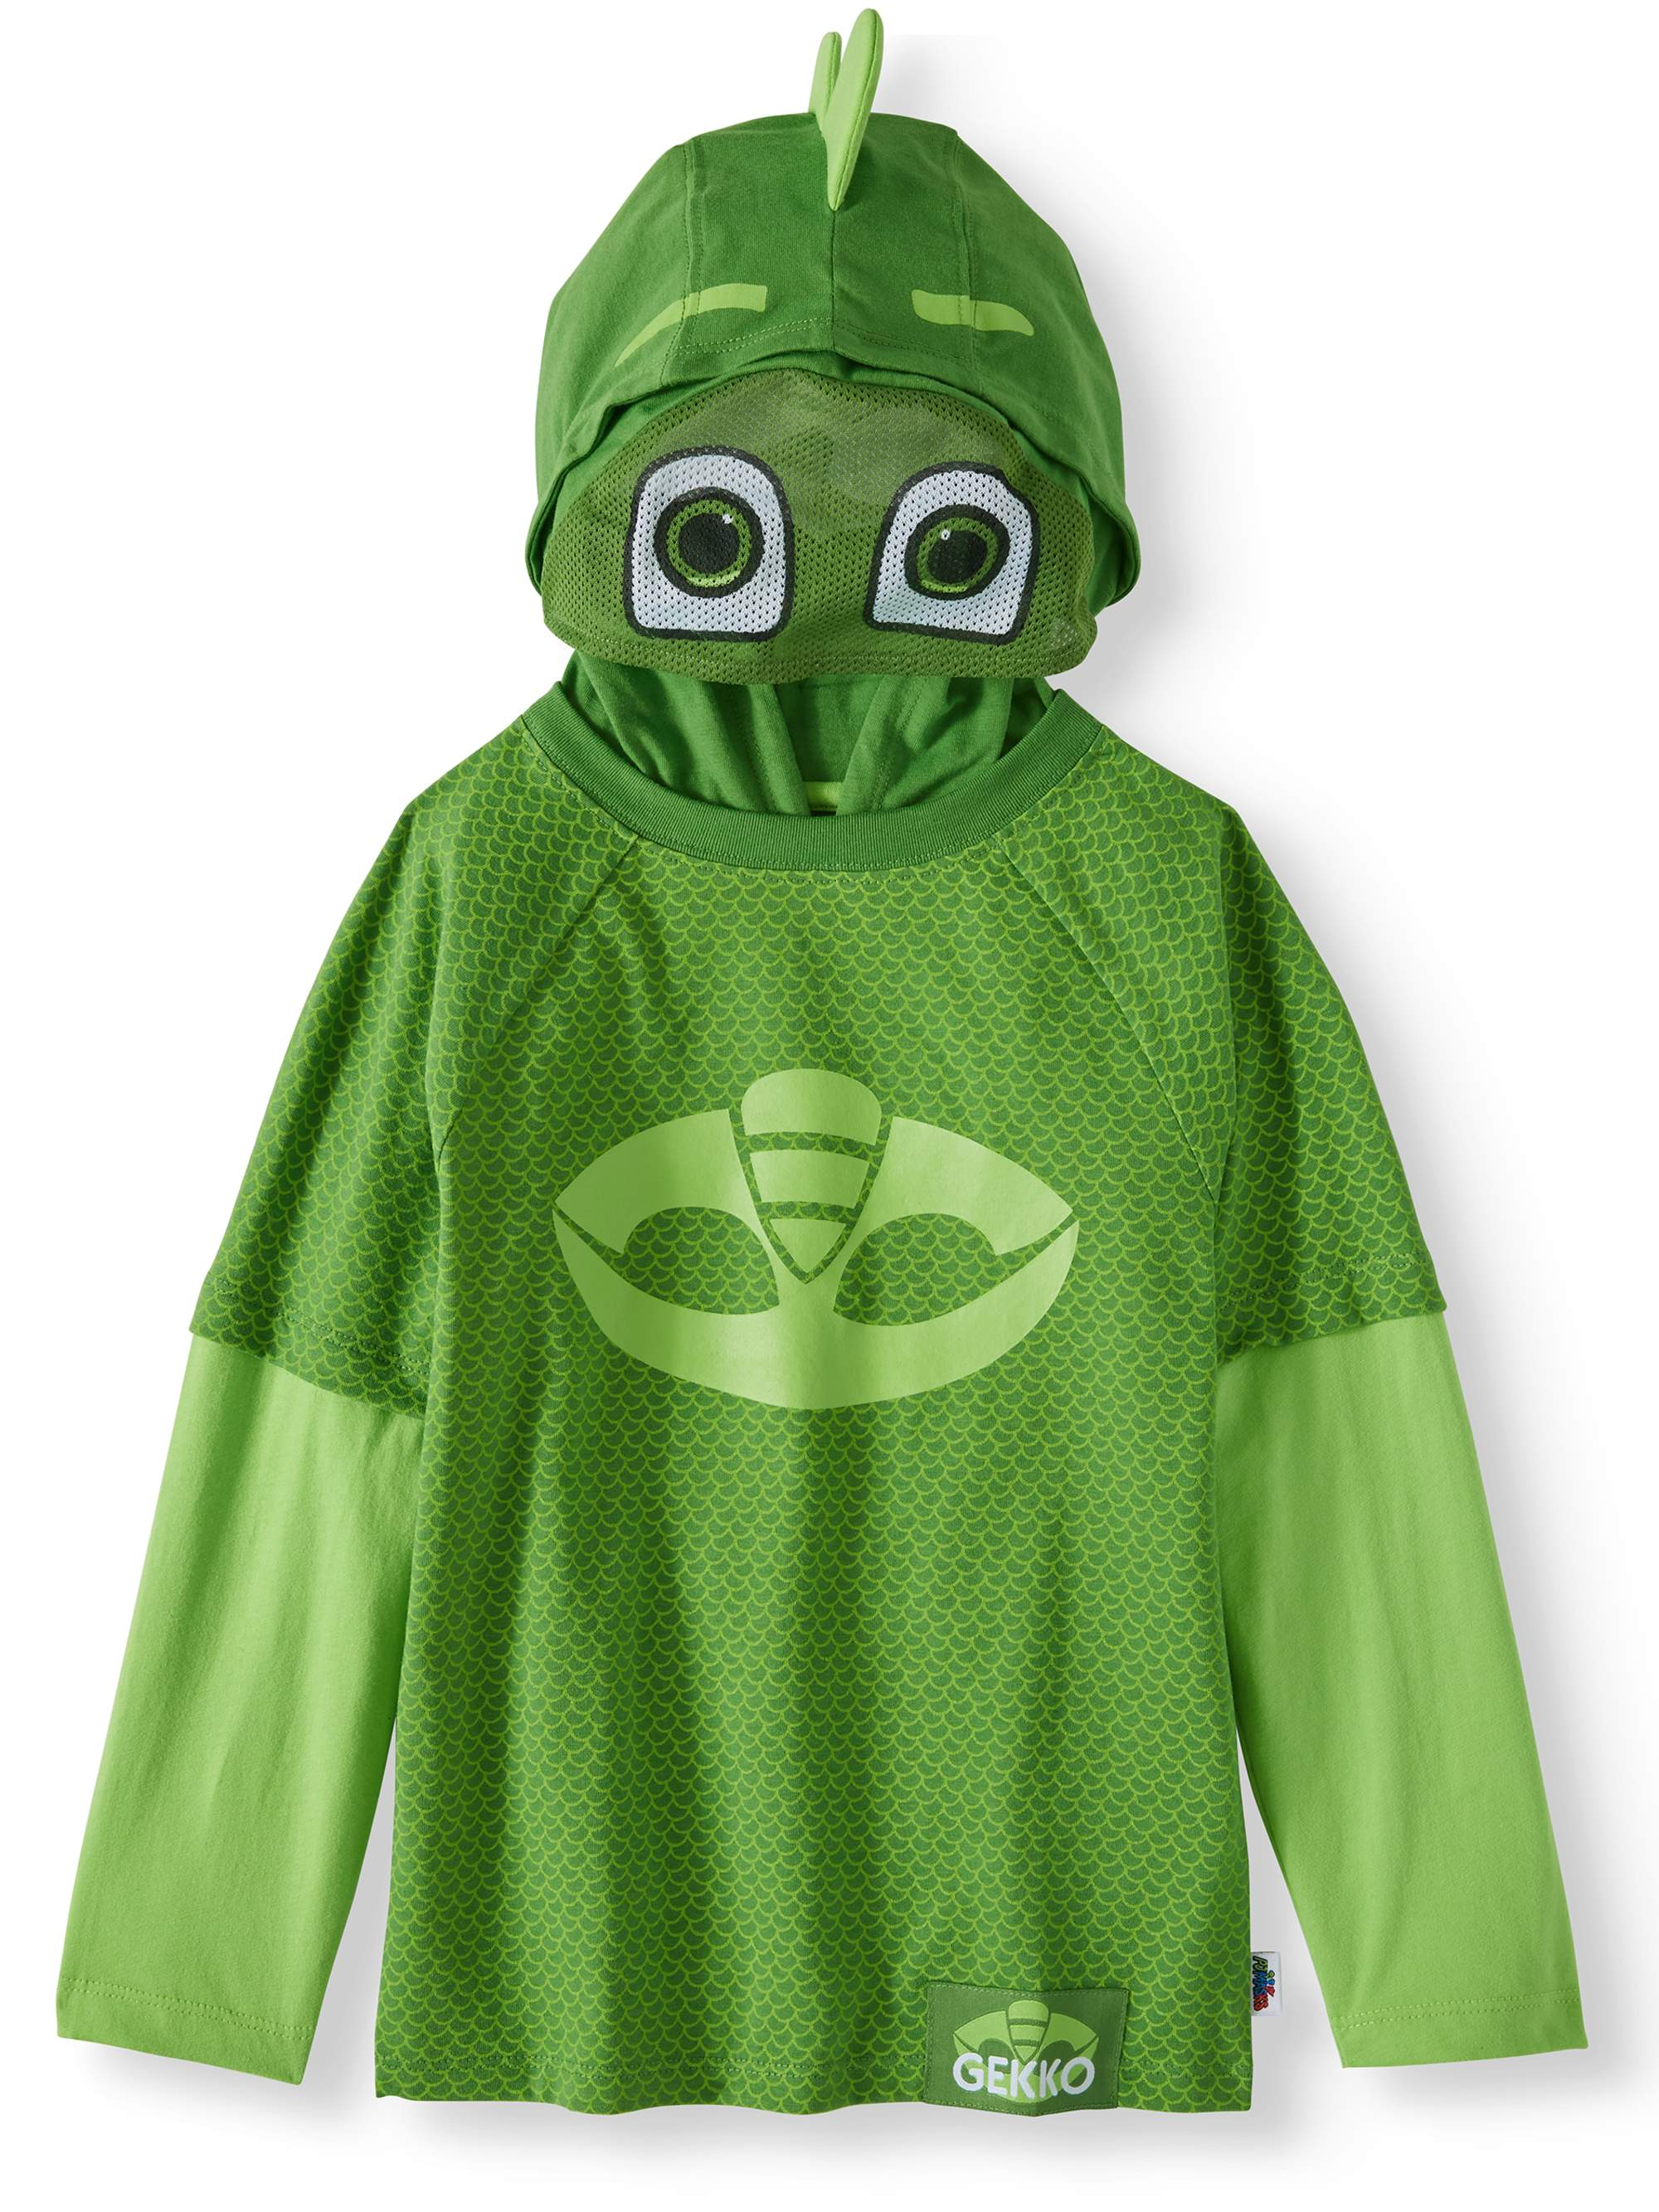 PJ Masks Toddler Boys' Costume Hooded Layered Long Sleeve T-shirt